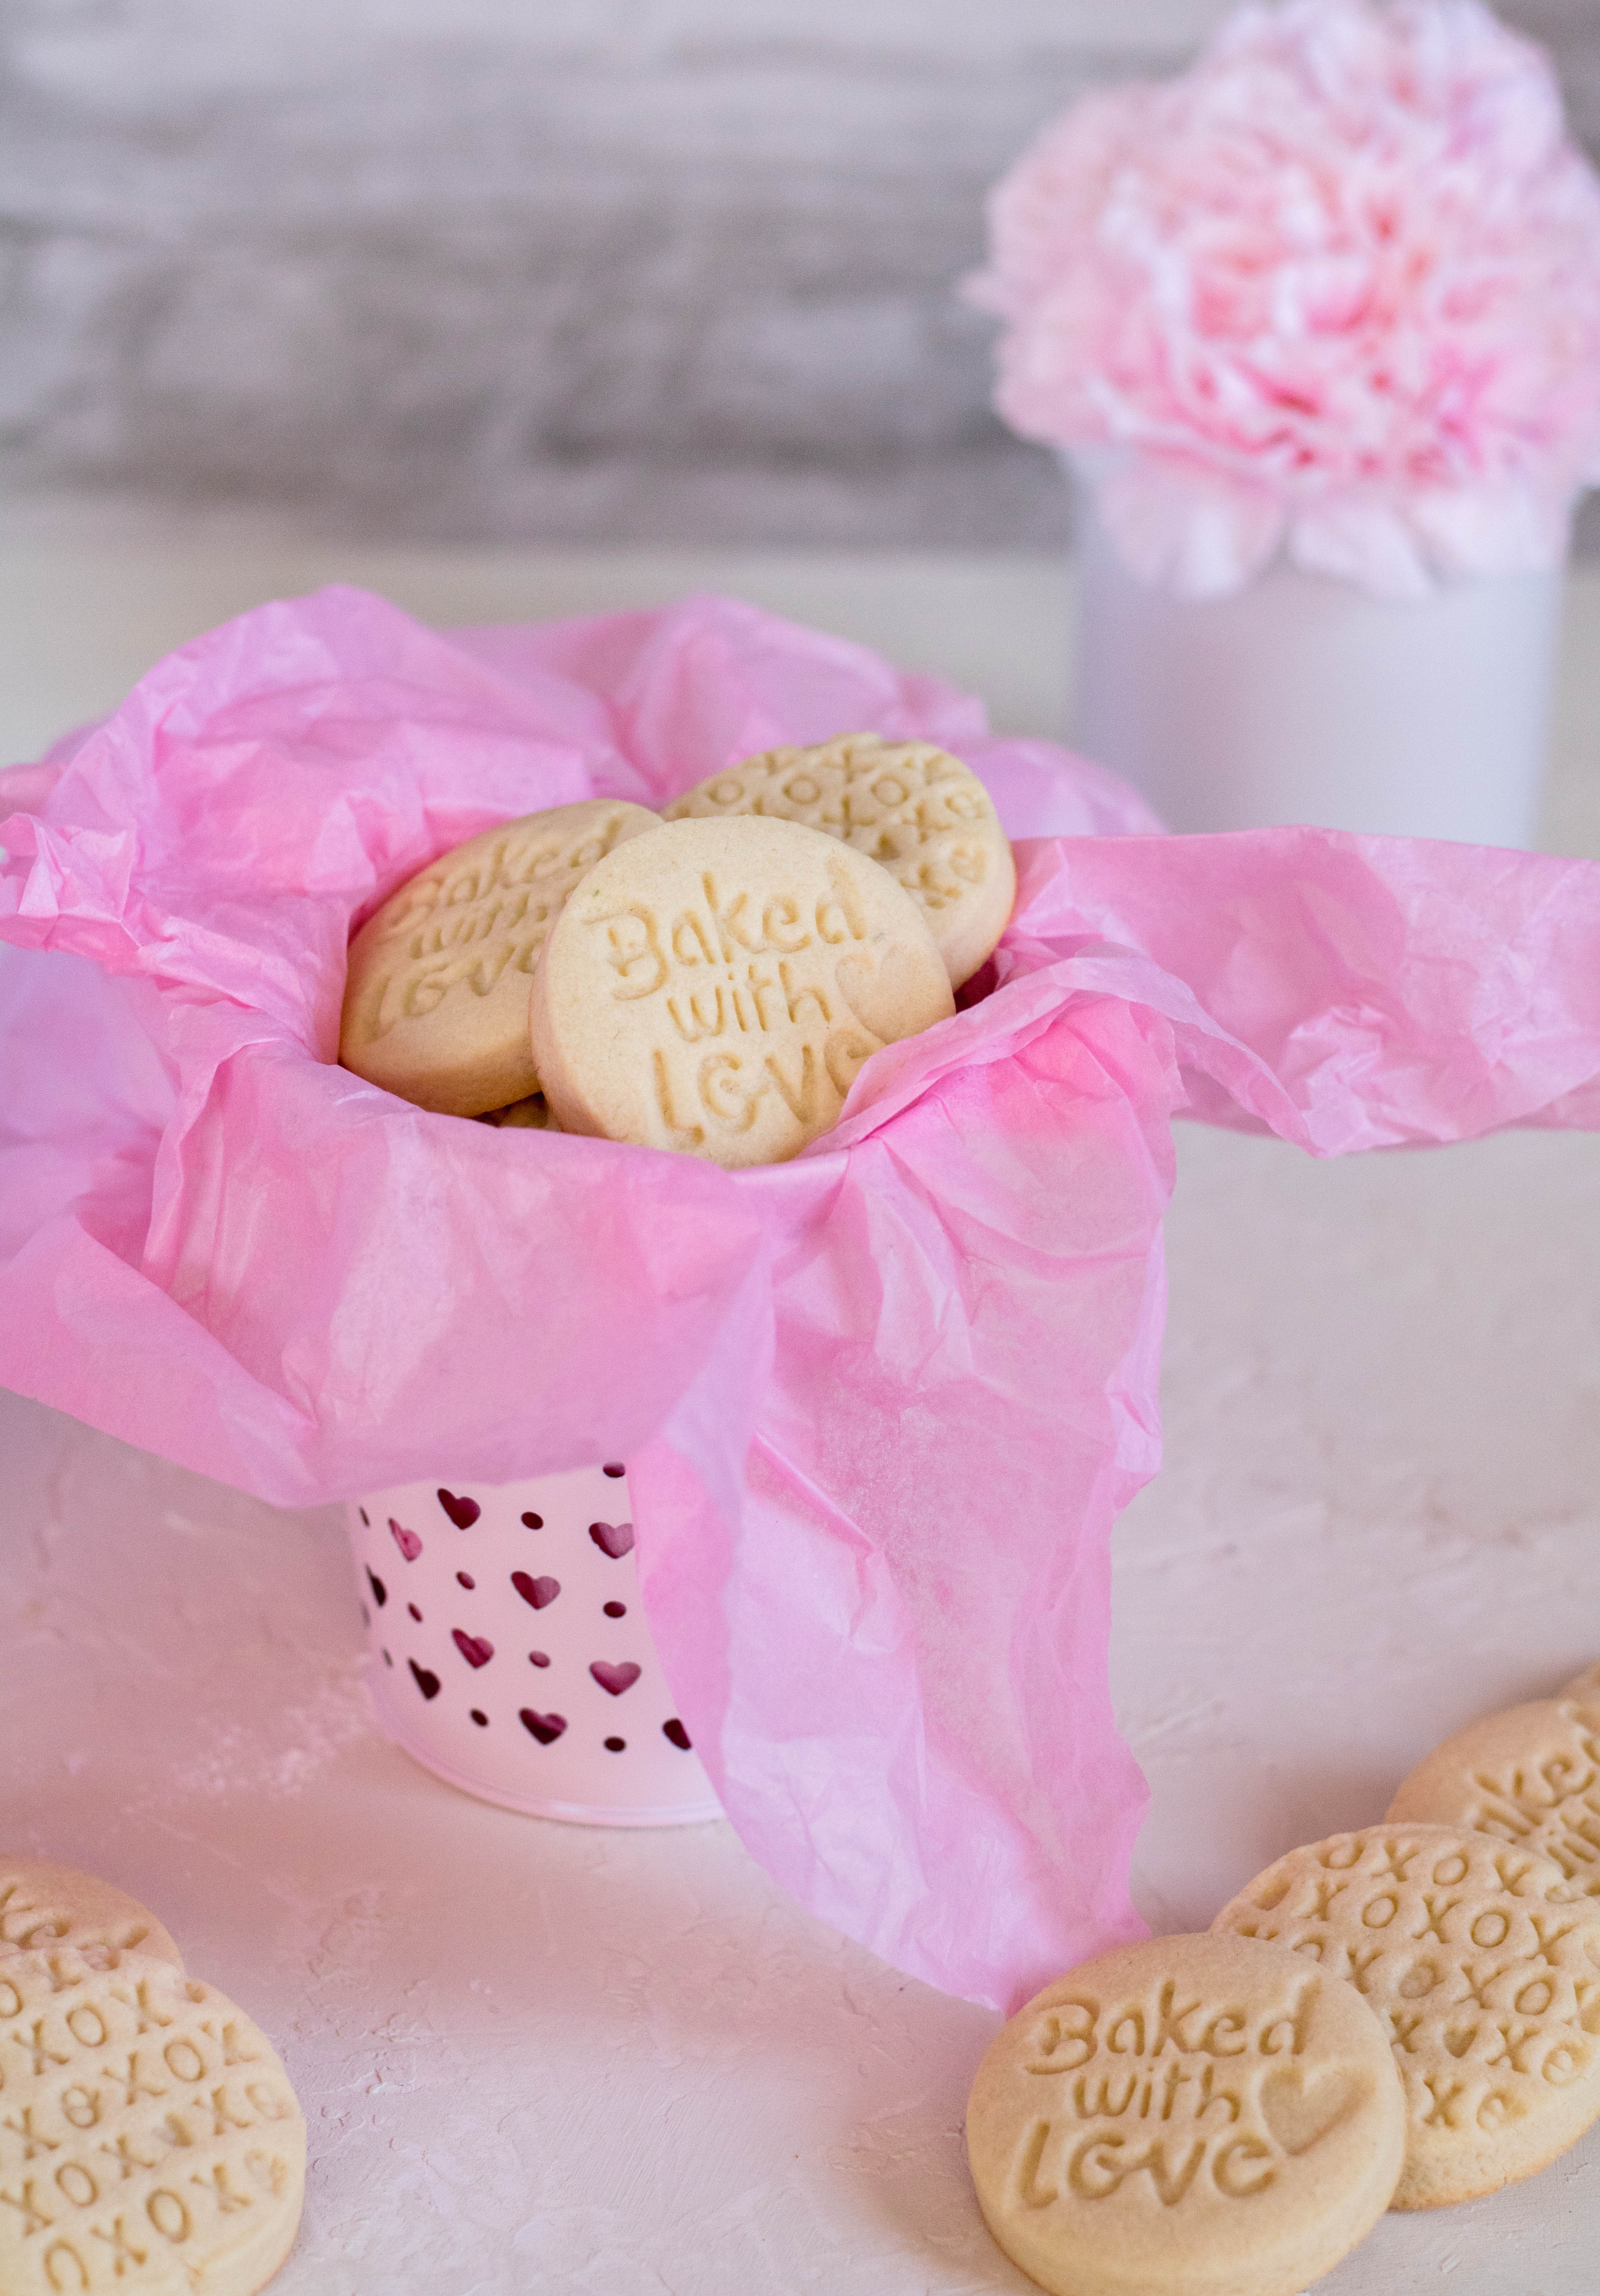 Baked with love cookie shortbread